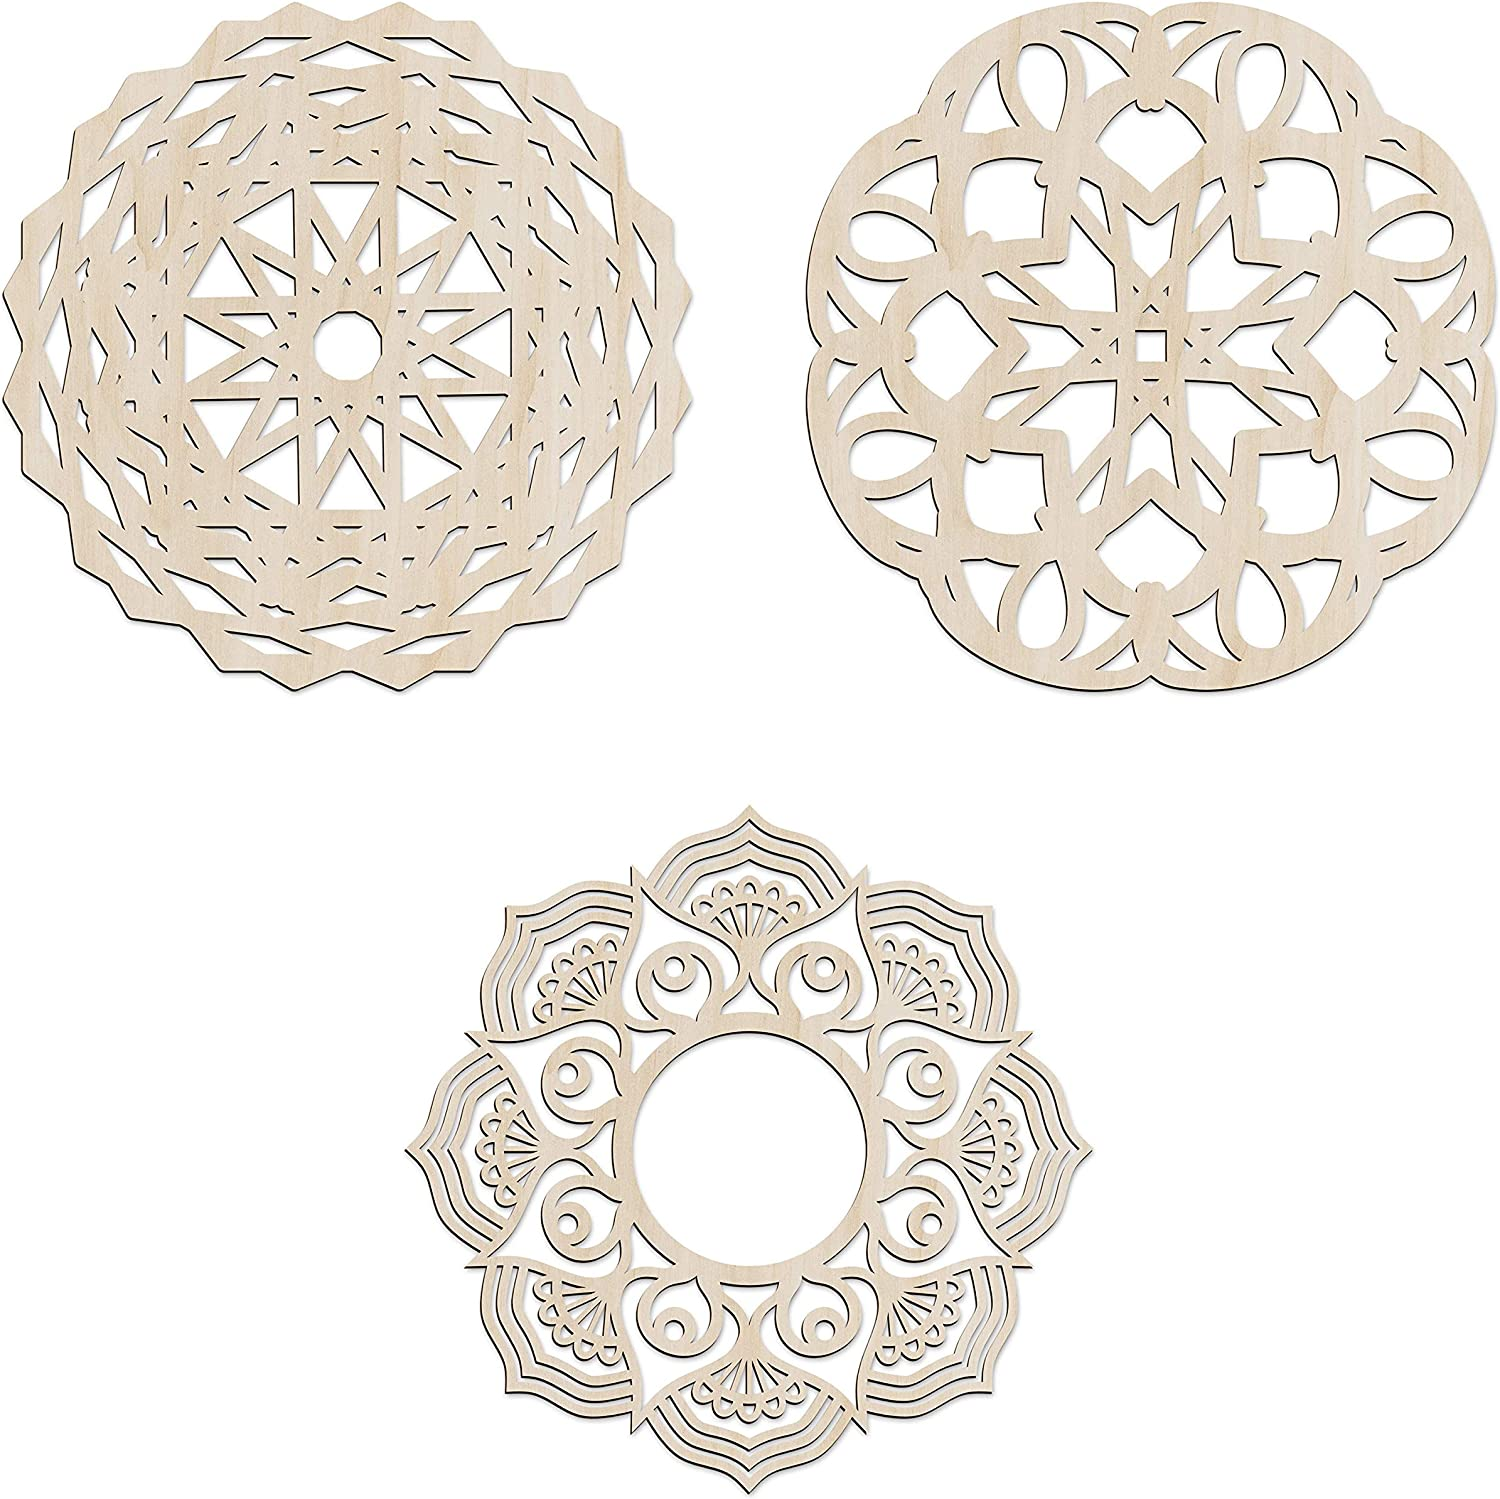 Ambesonne Mandala Wooden Wall Art Set of 3, Traditional Folk Swirling Spring Floral, Birch Wood Plywood Rustic Wall Art Accent for Hallway Bedroom Living Room Cafes and Offices, 11.4